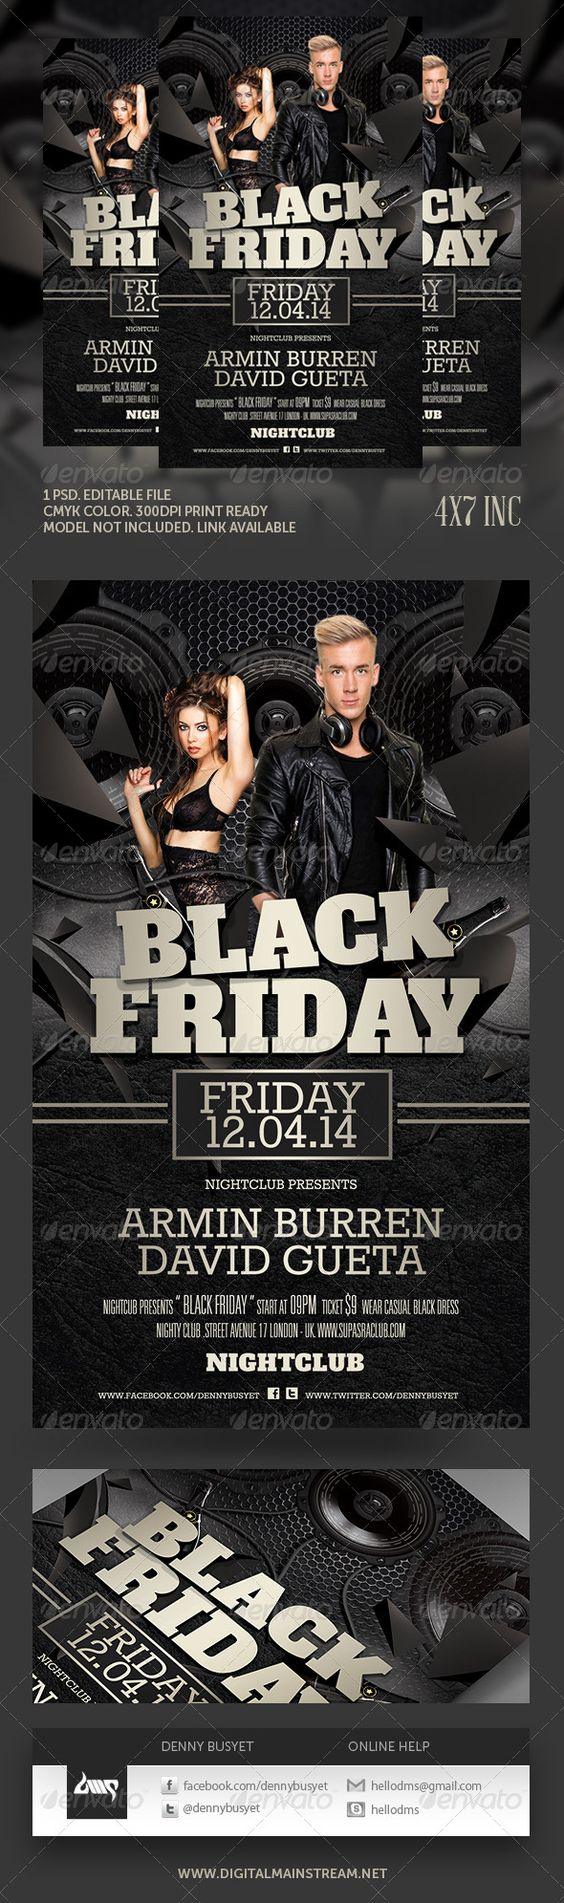 black friday club flyer template black party flyer template and black friday night club flyer template psd file here